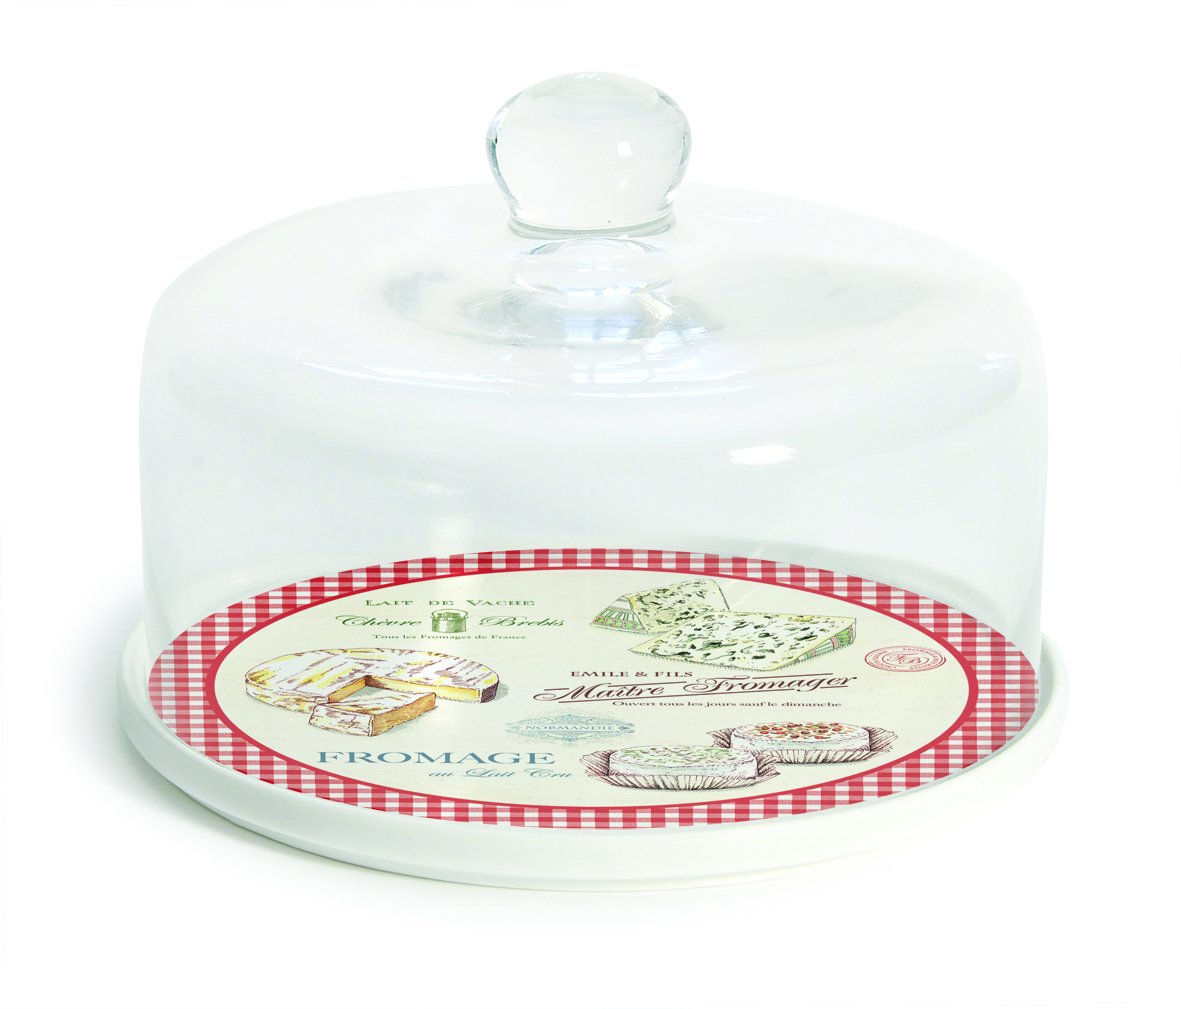 Porcelain Cheese Serving Plate with Glass Dome - Maitre Fromager R2S